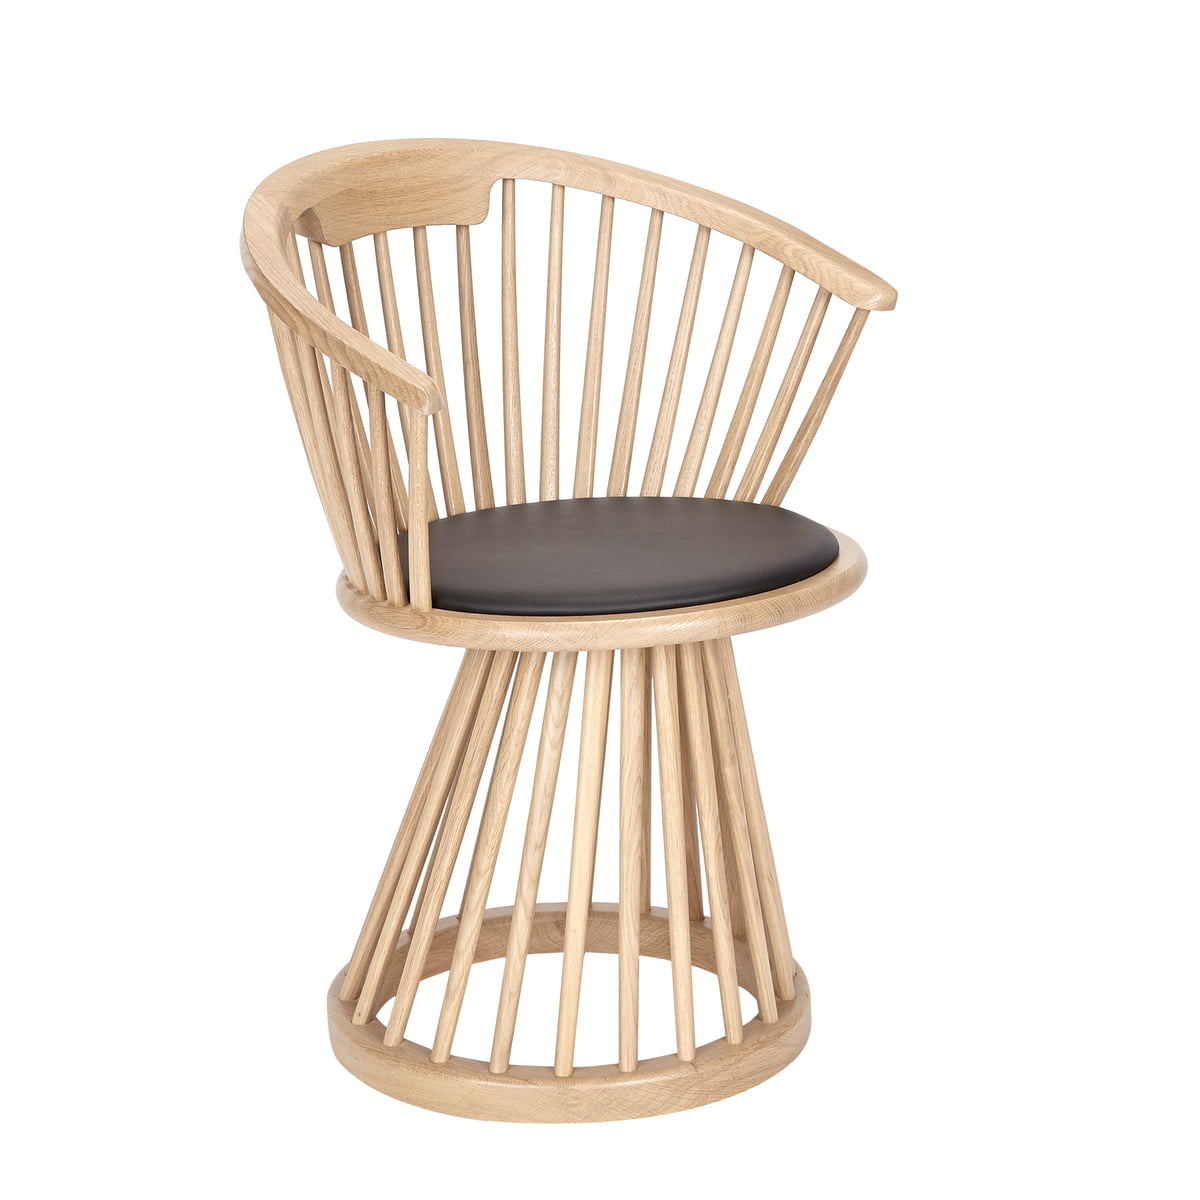 Fan dining chair by tom dixon made of natural oak